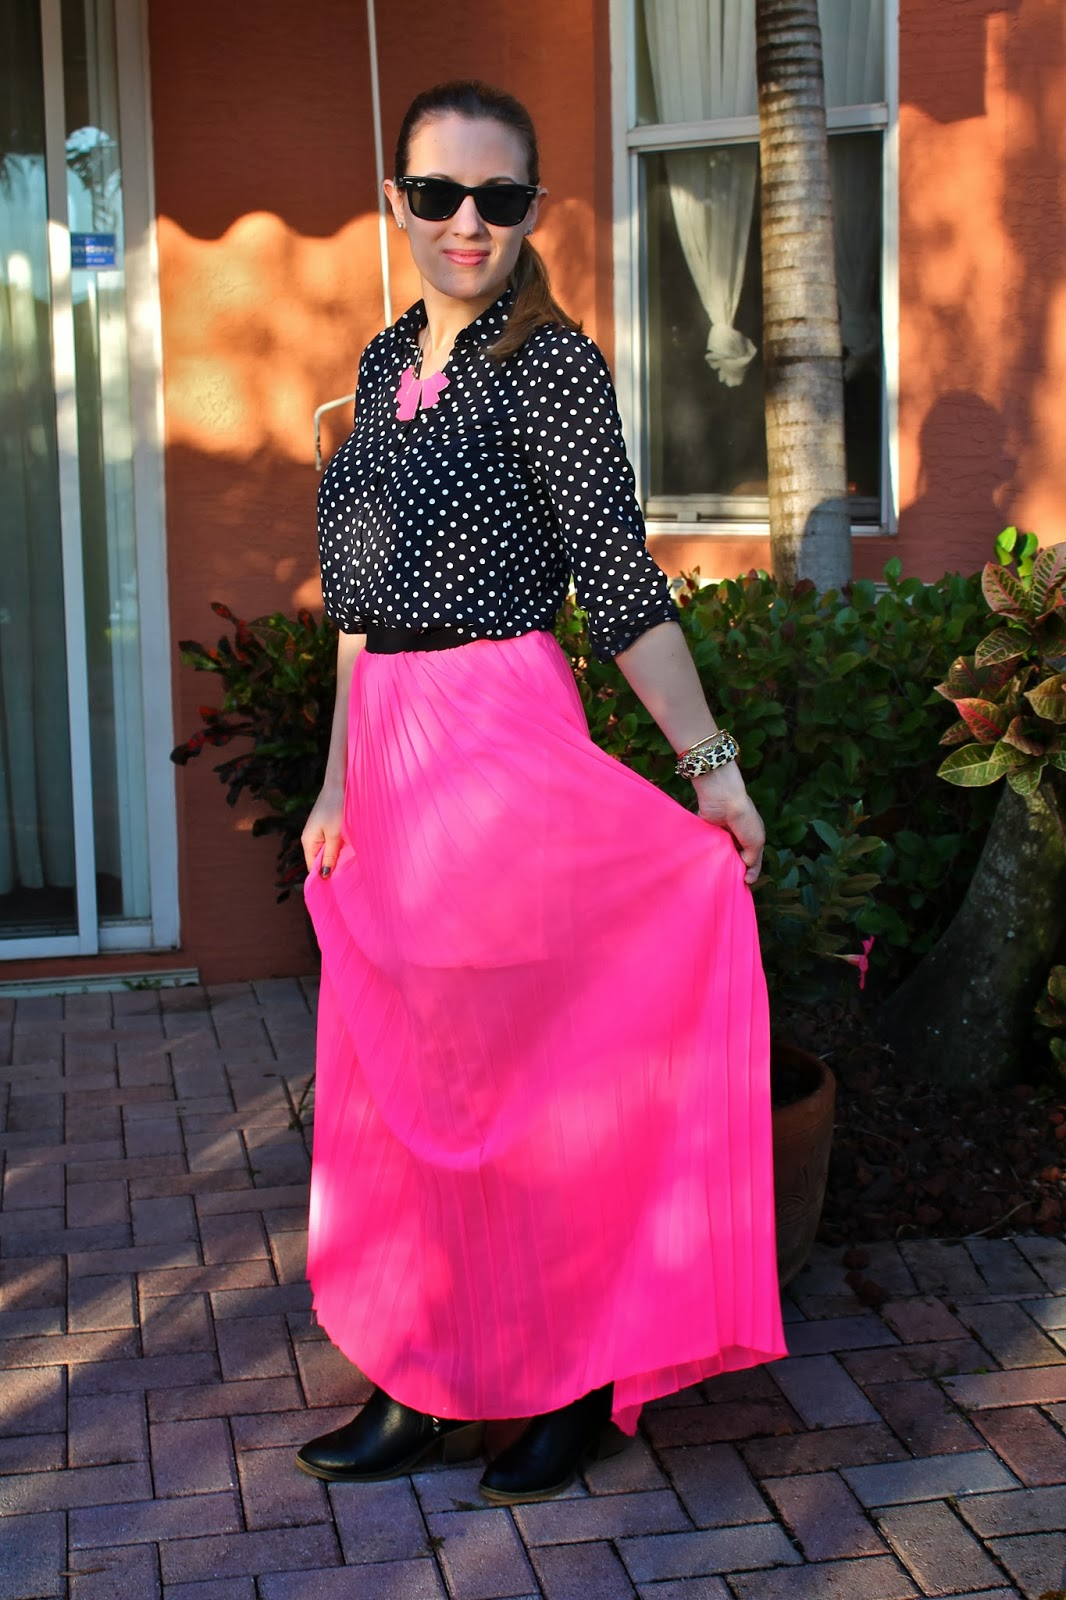 H&M, Kate Spade, Nordstrom, maxi skirt, feminine, tailored, neon, Miami, Palm Beach, fashion, style, look book, Betsey Johnson, Ray-Ban